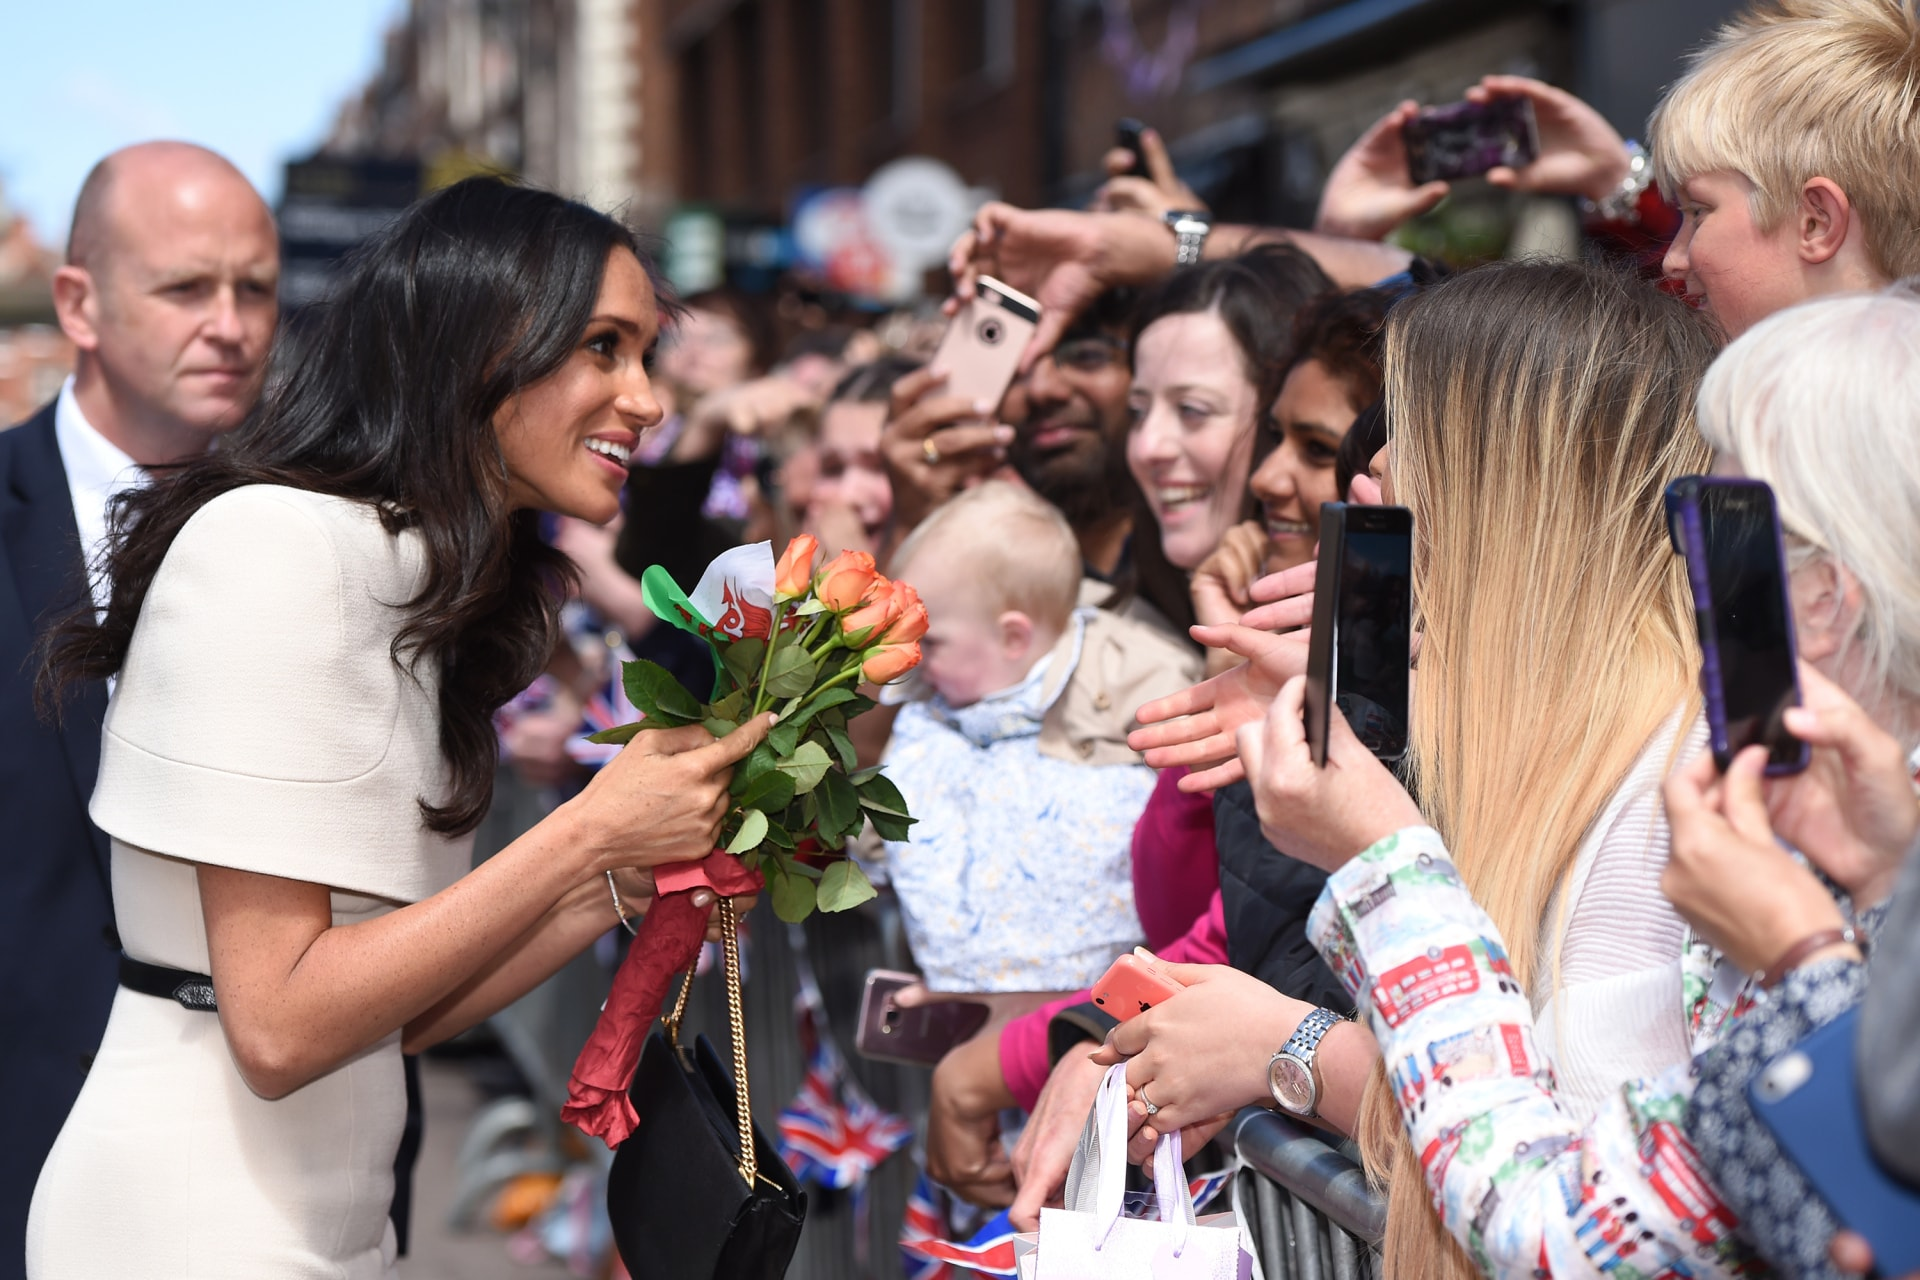 Meghan Markle speaks to well wishers. Image credit: Getty Images